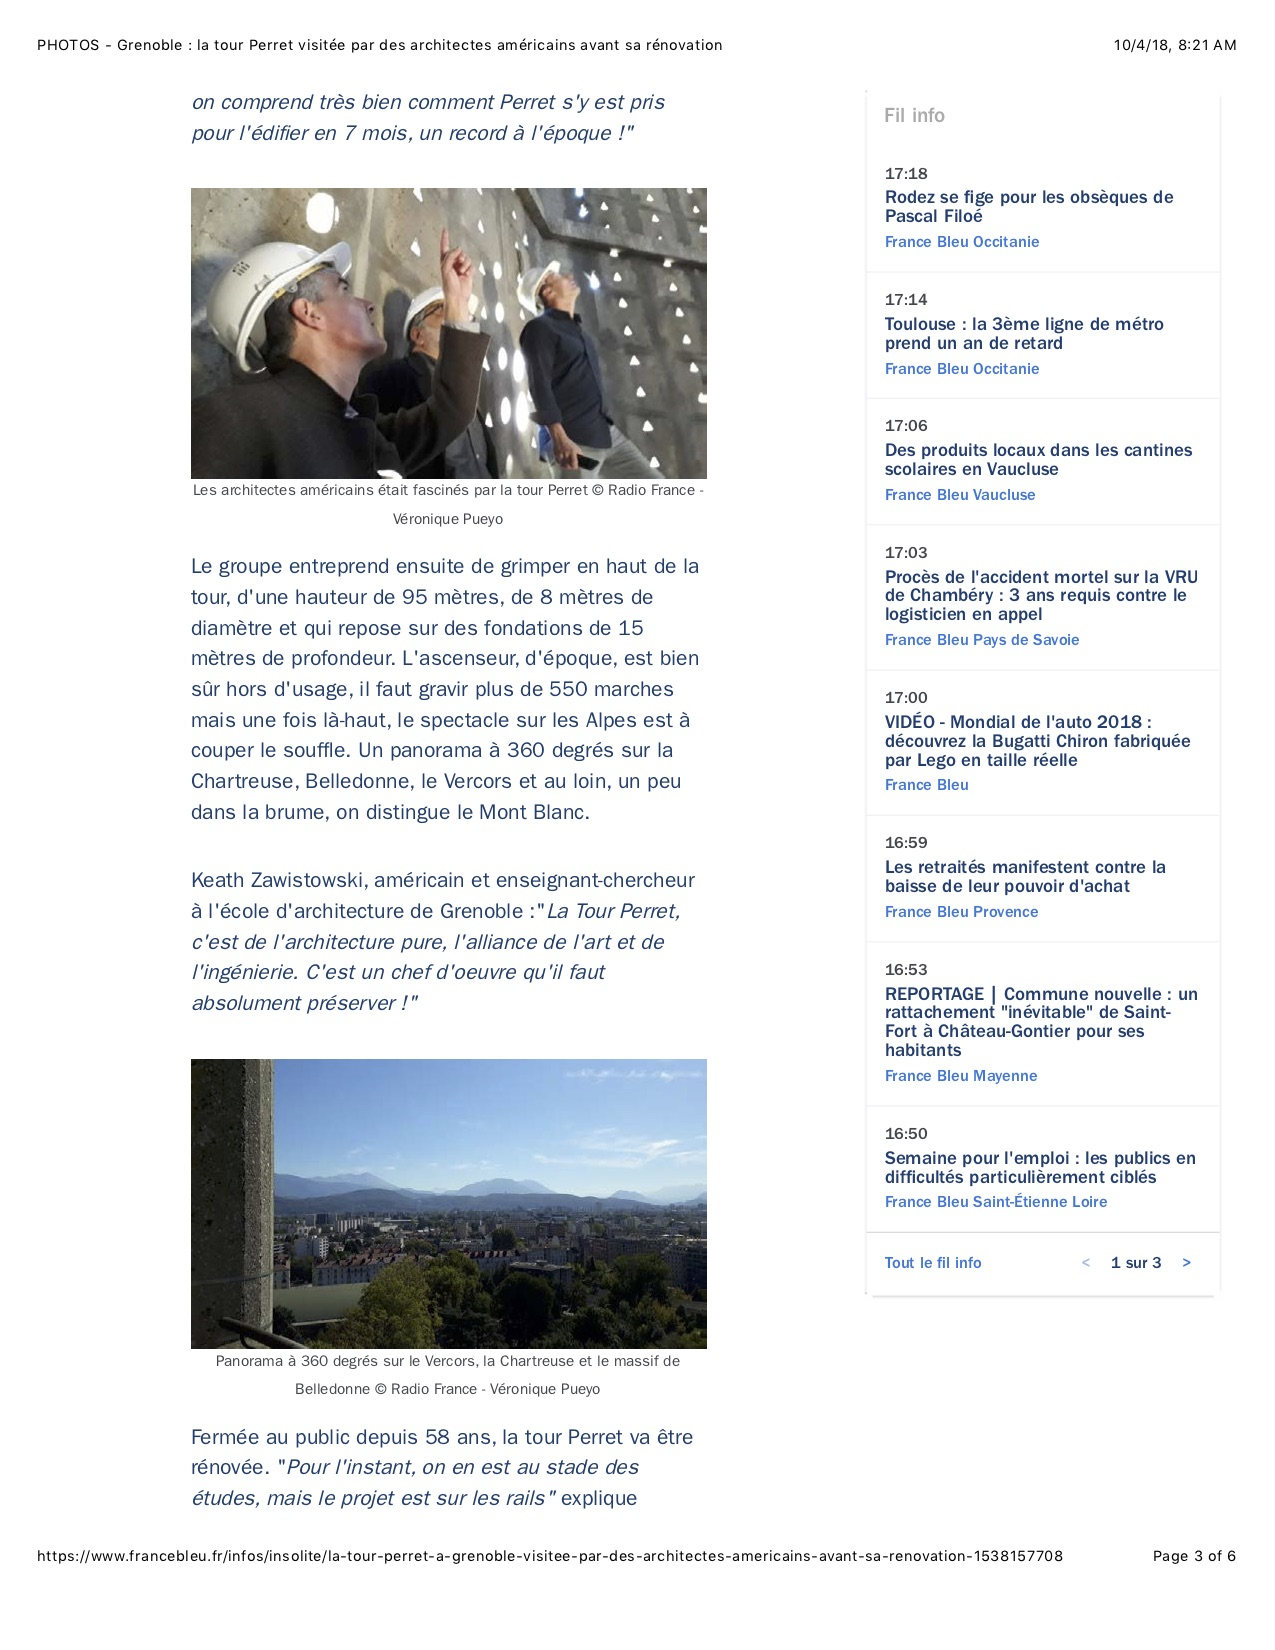 Article by Véronique Pueyo. This is page 3 of 6.